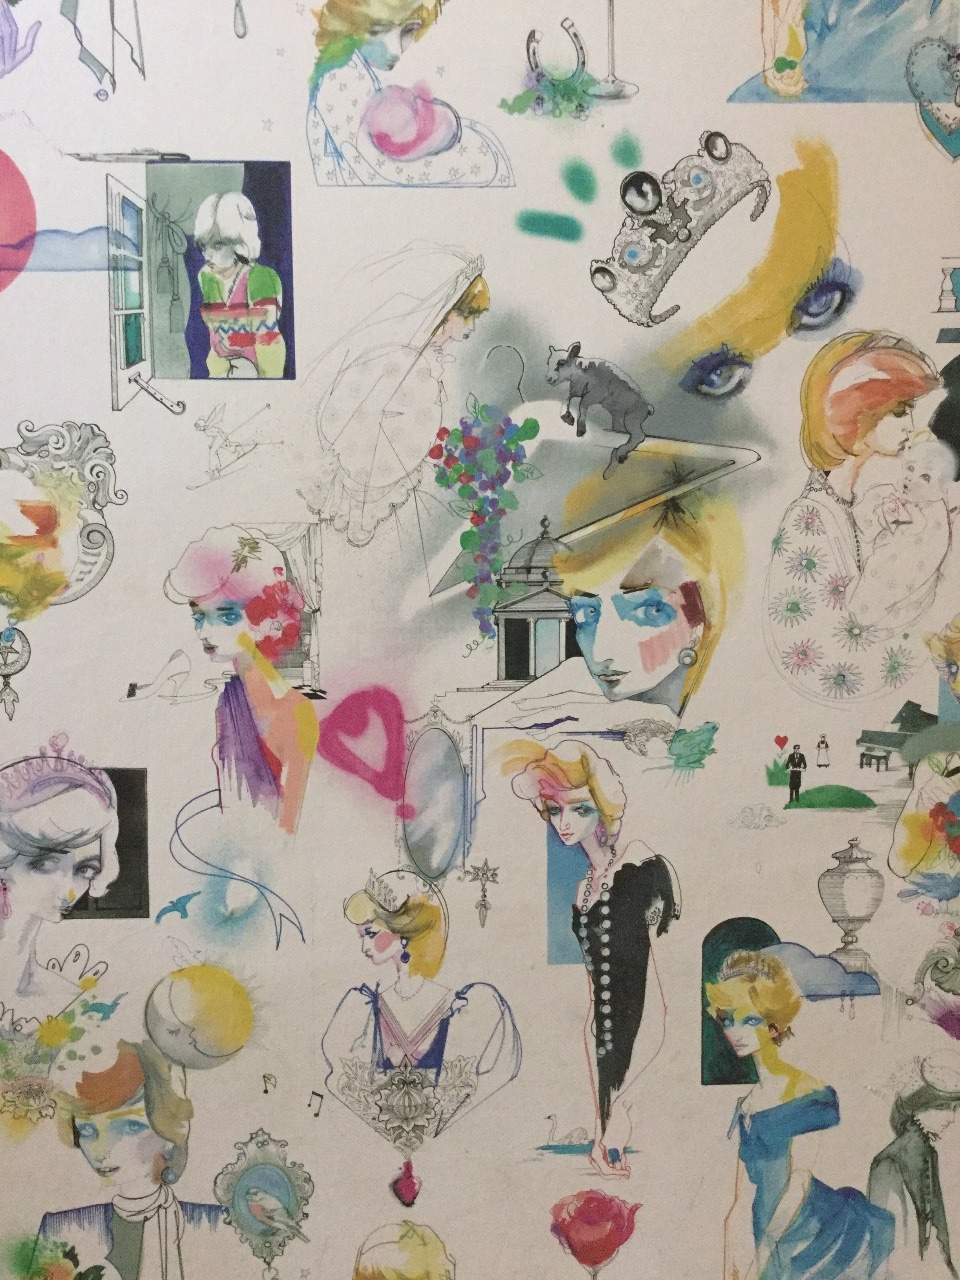 Even the wallpaper is Diana!